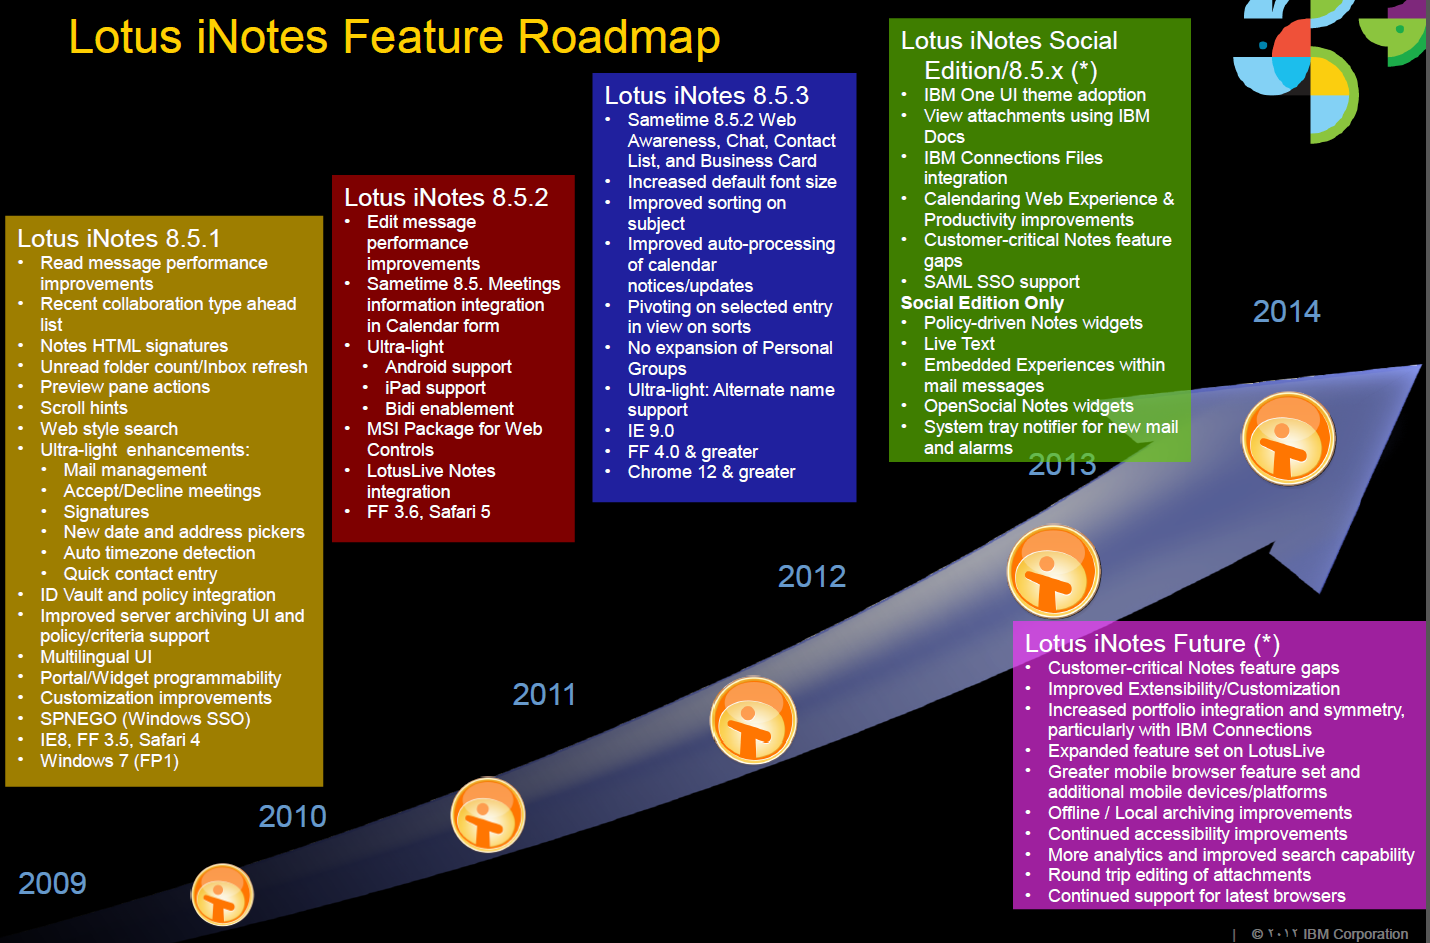 inotes Roadmap Embedded Experiences will be supported in your email in Notes and inotes Social